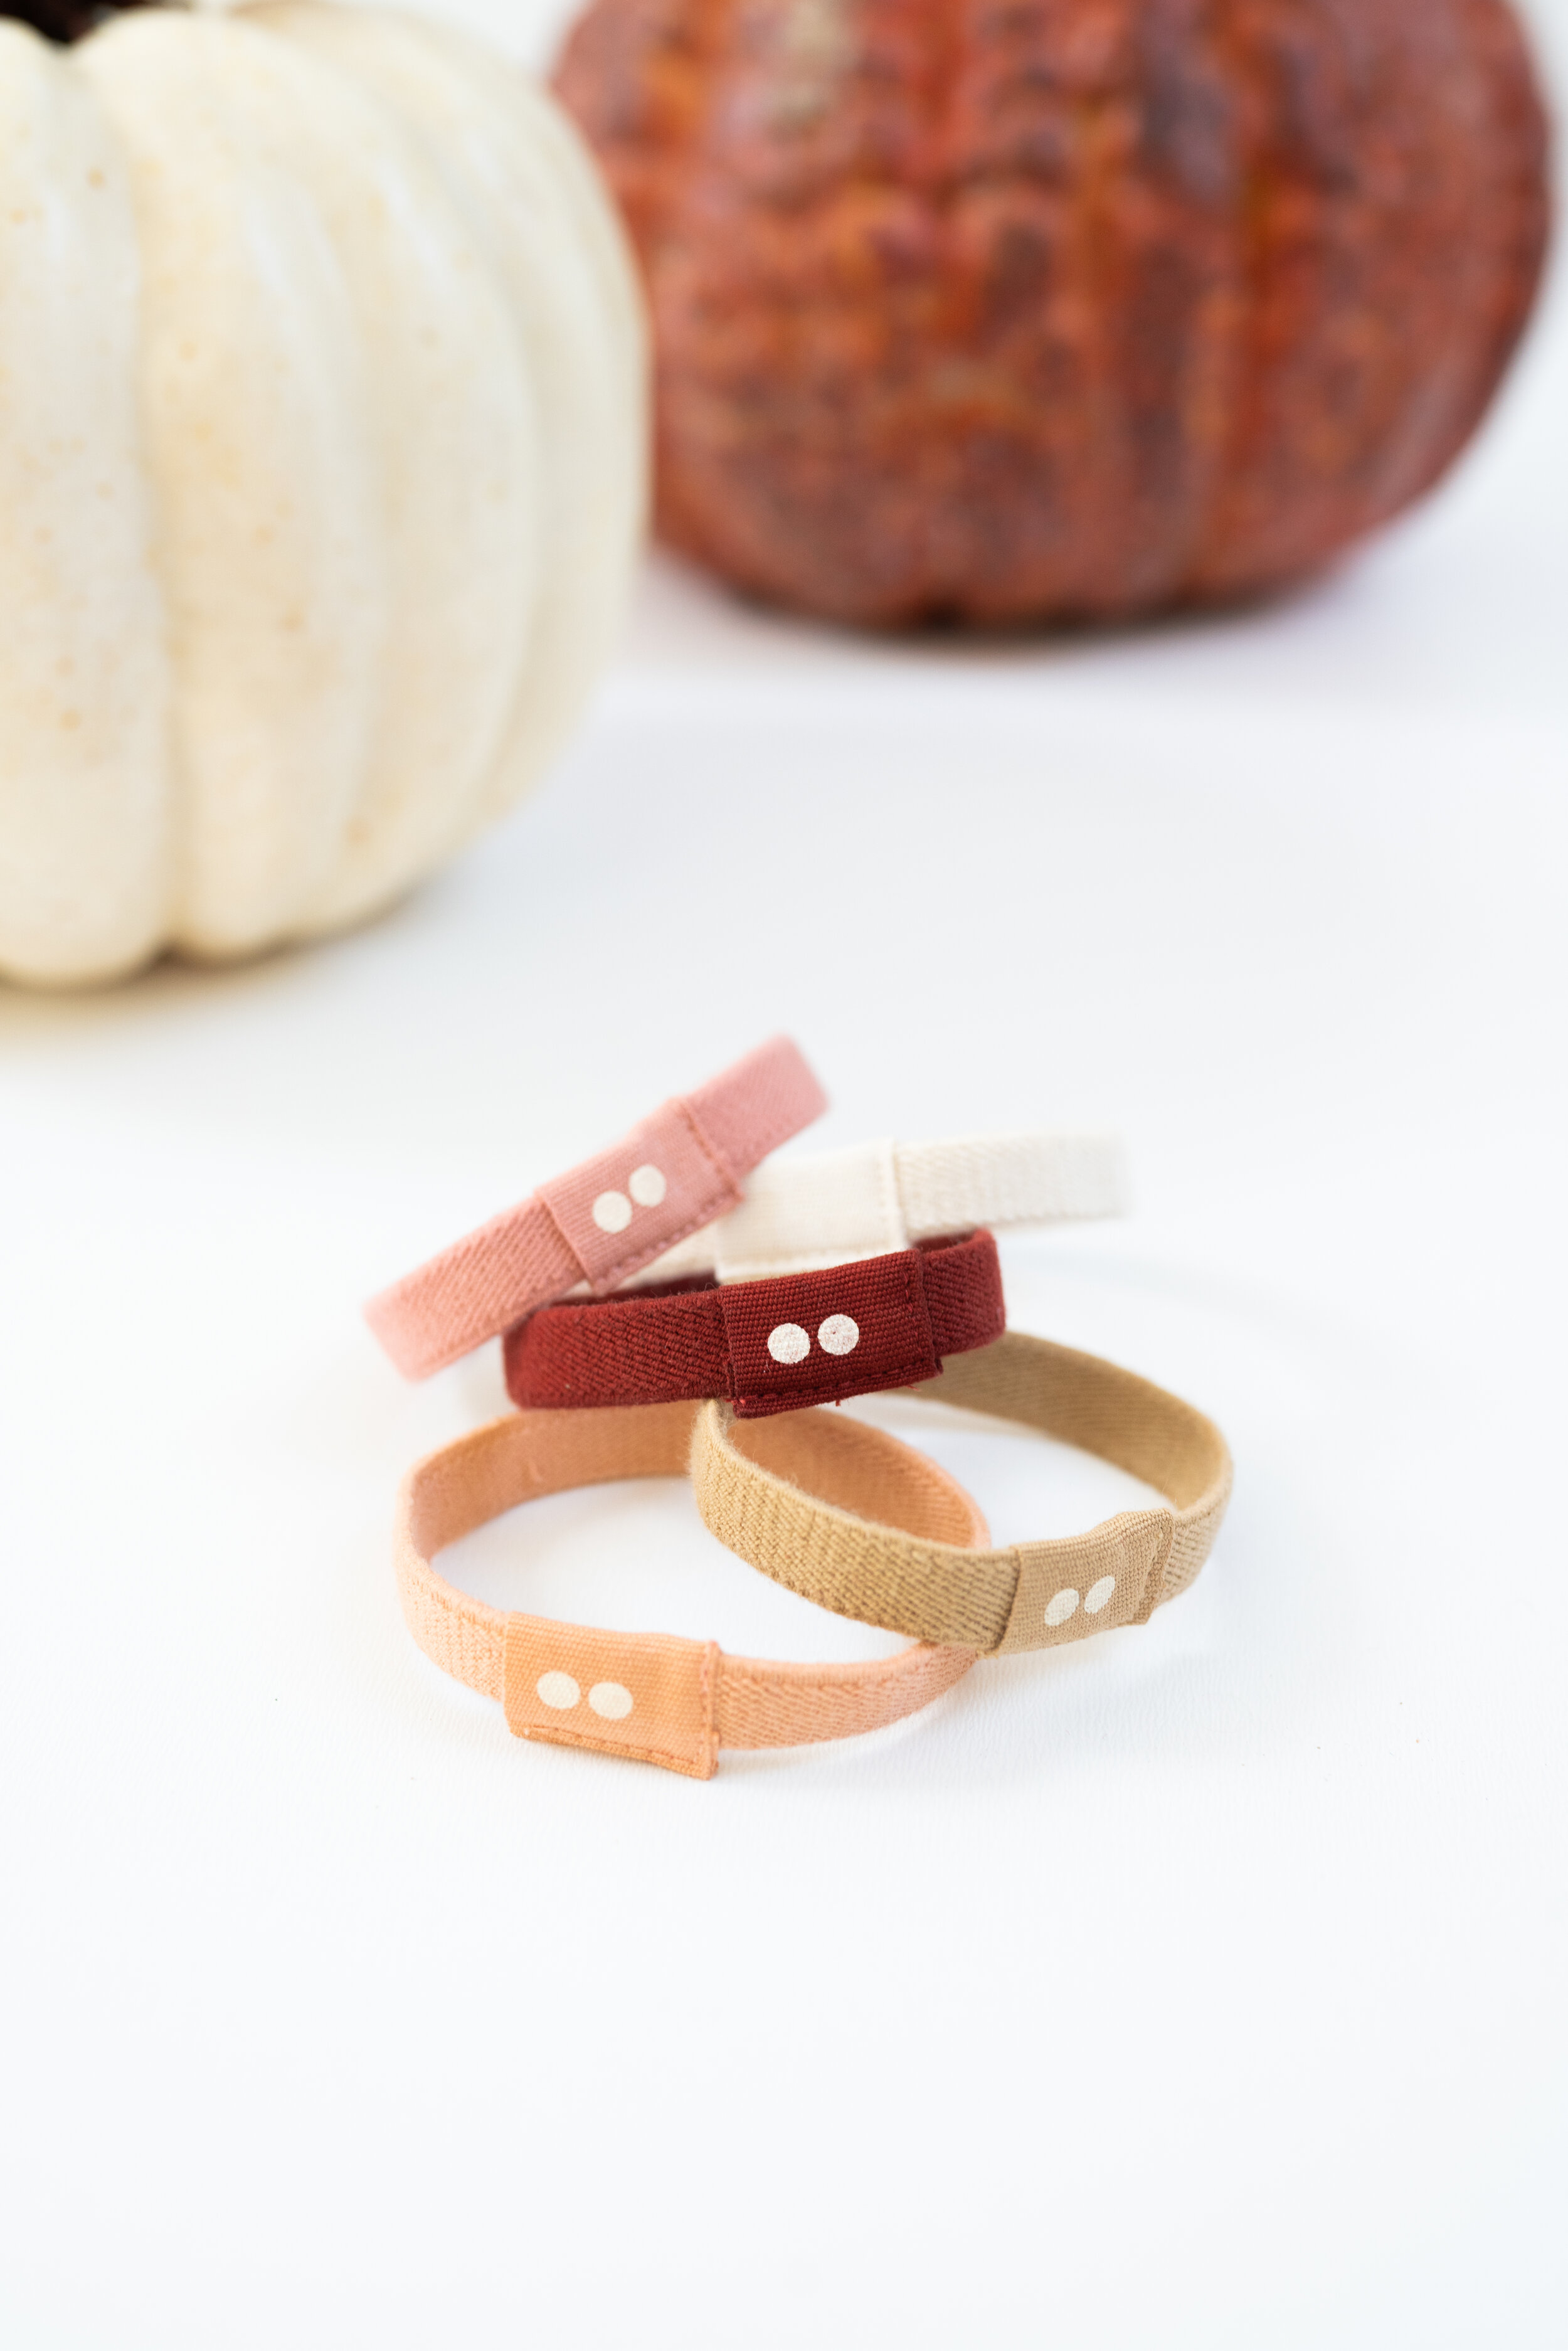 hair ties for redheads